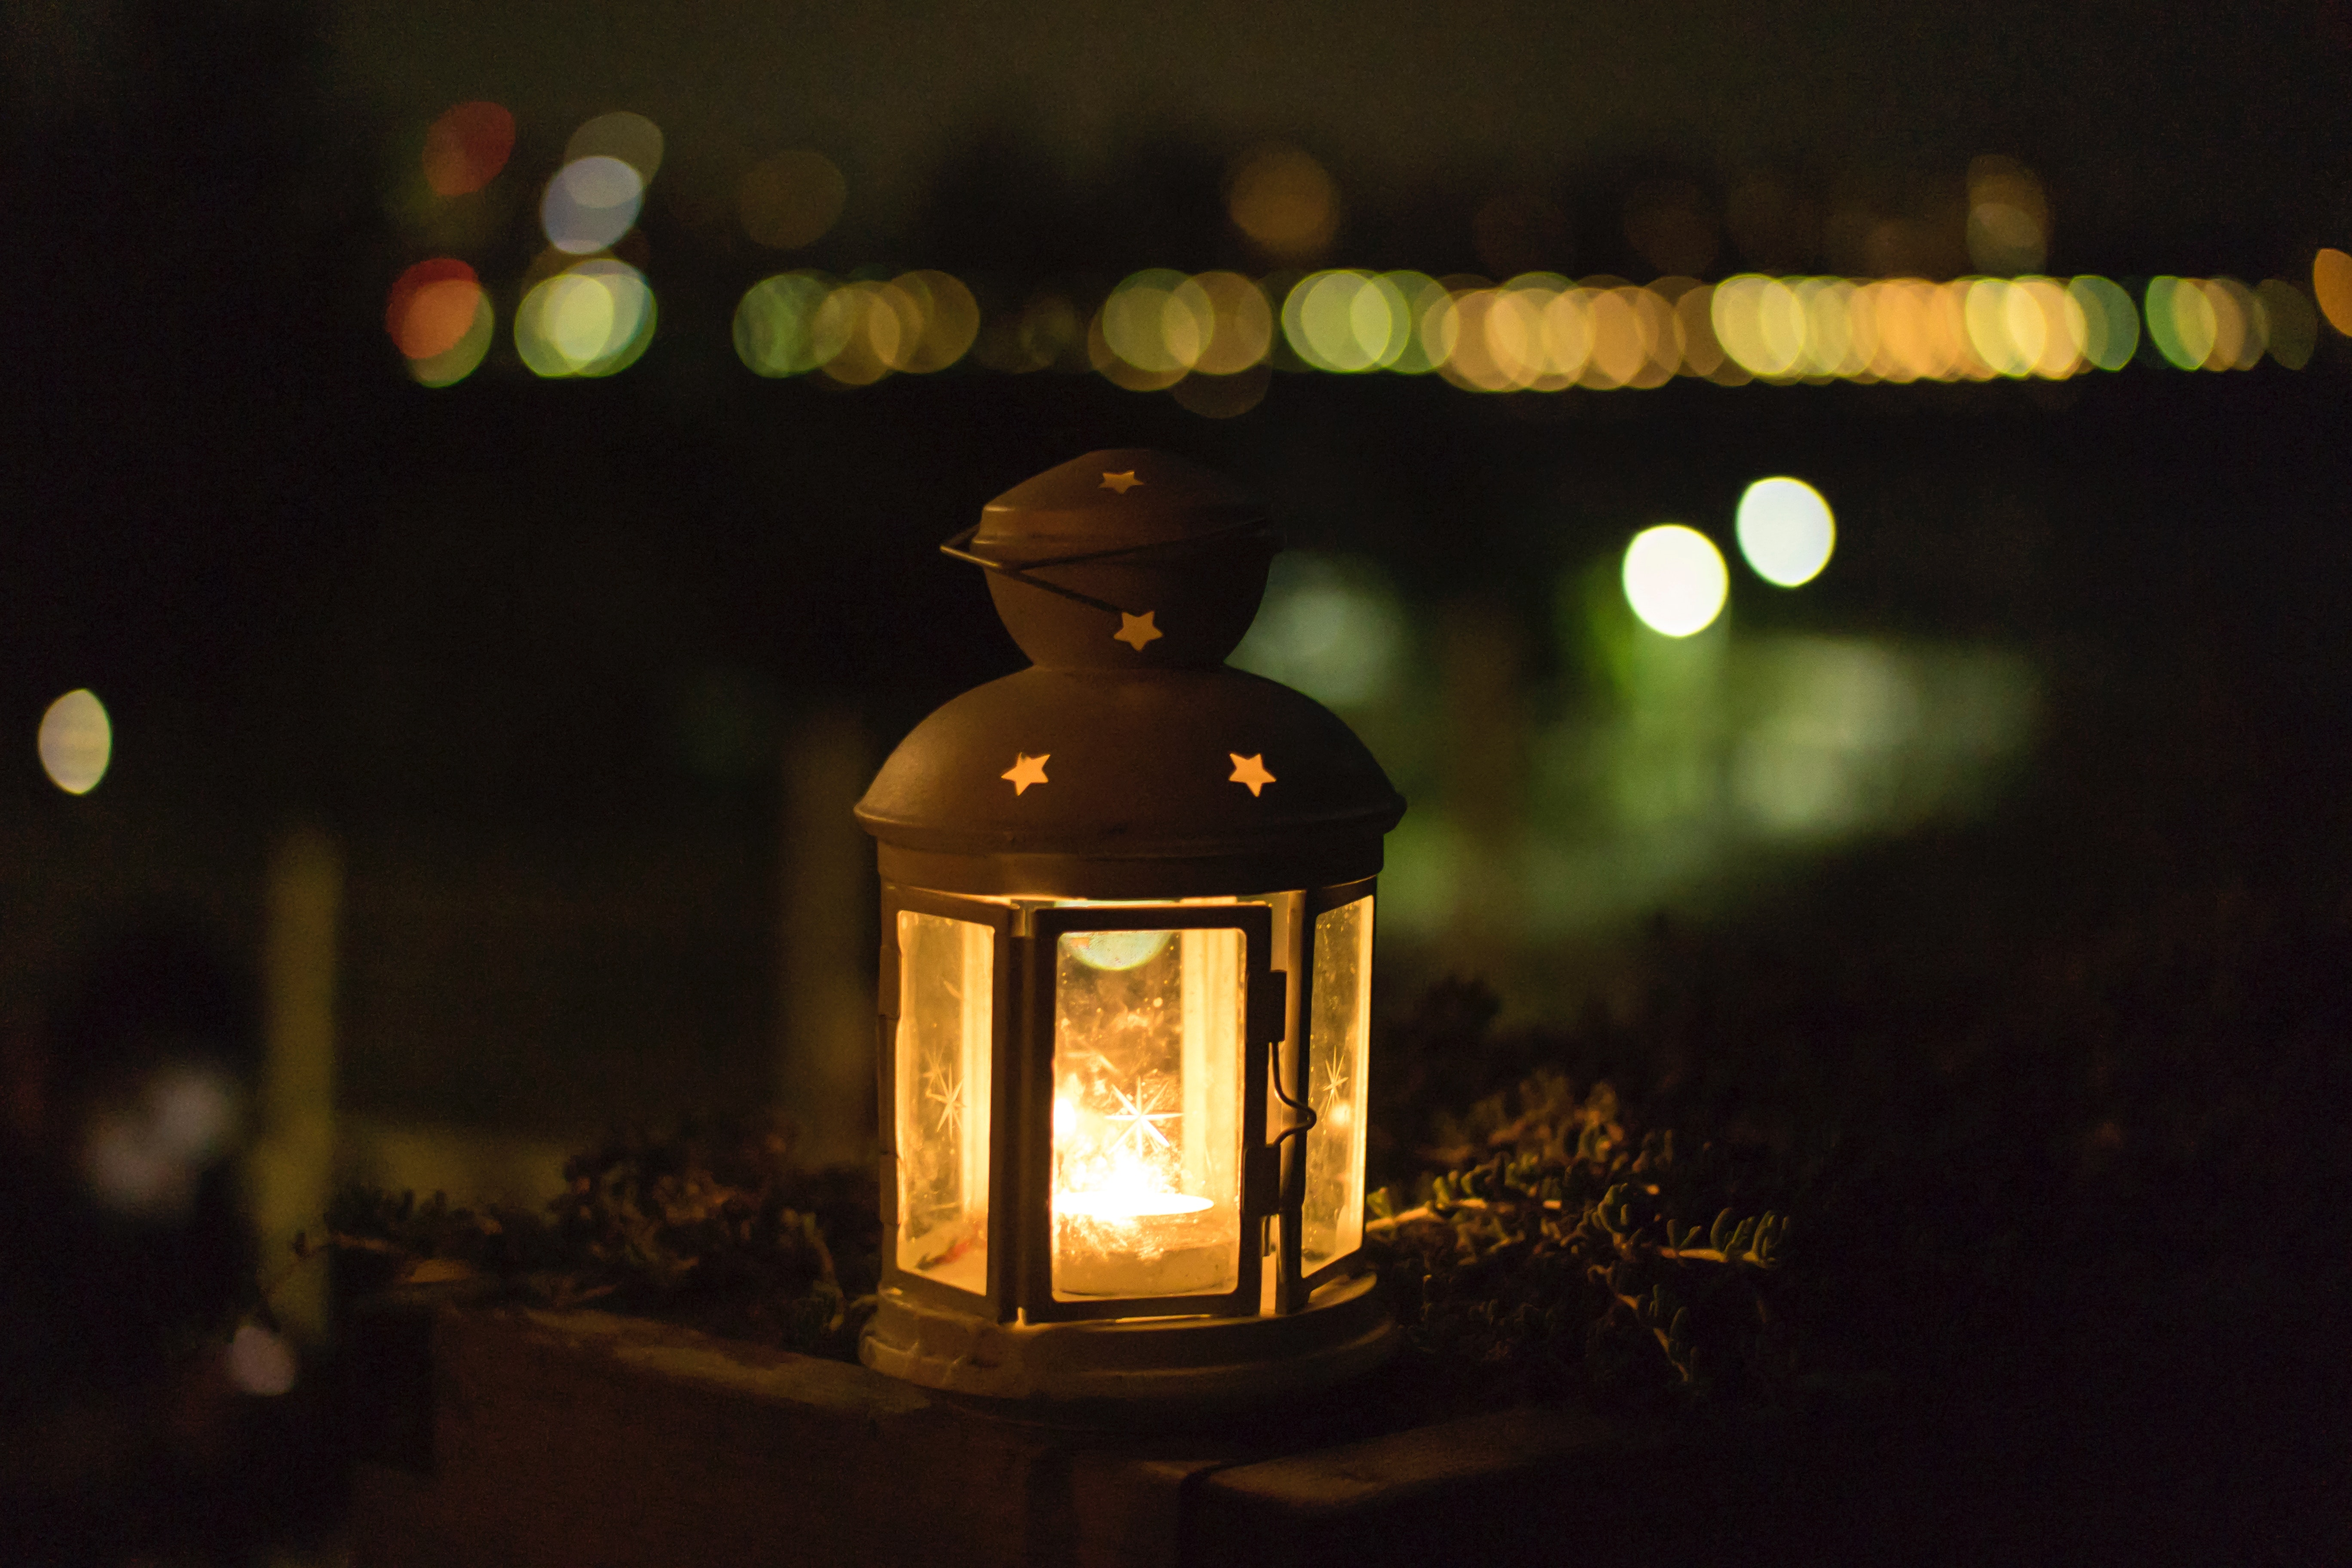 The best light and lantern choosing tips for camping